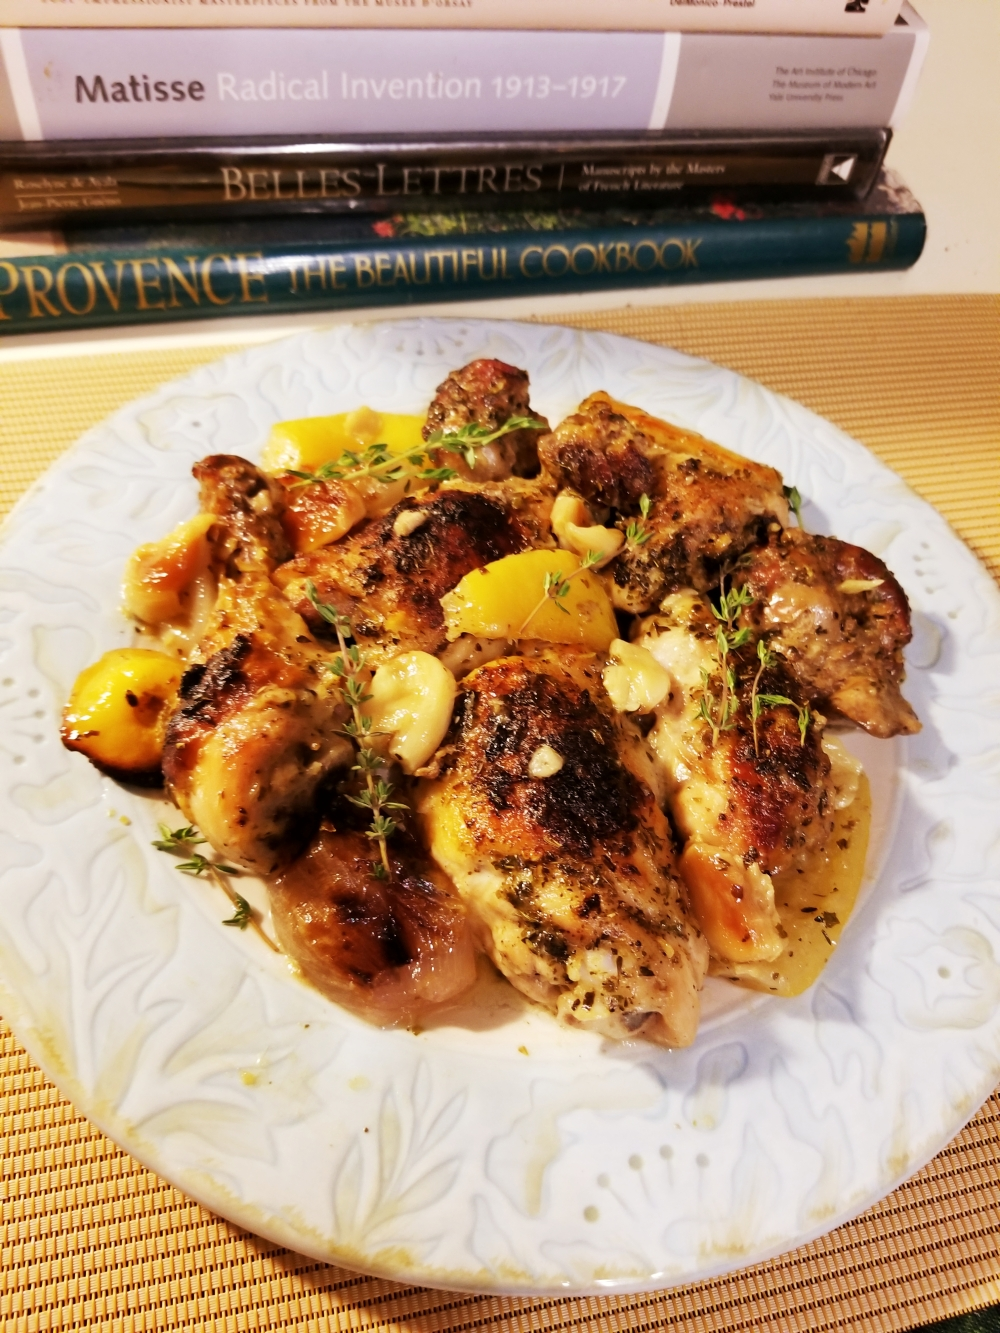 Roasted Chicken with Provence spices